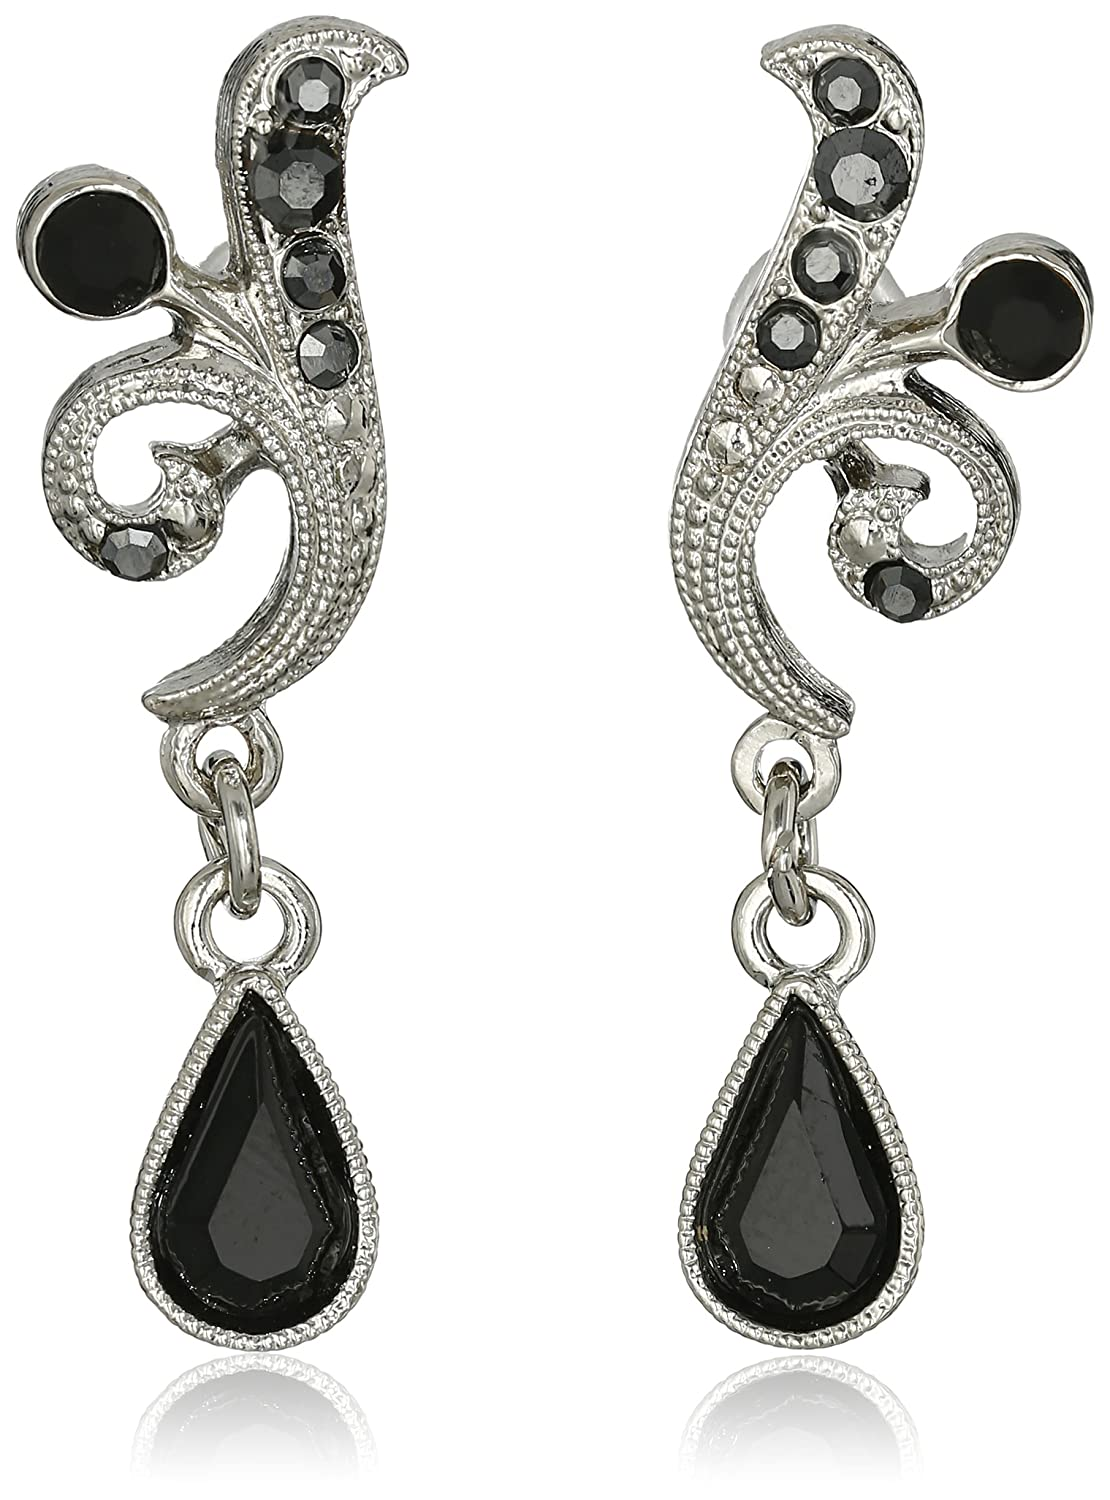 Vintage Style Jewelry, Retro Jewelry 1928 Jewelry Silver-Tone Black and Hematite Color Crystal Vine Drop Earrings $21.00 AT vintagedancer.com